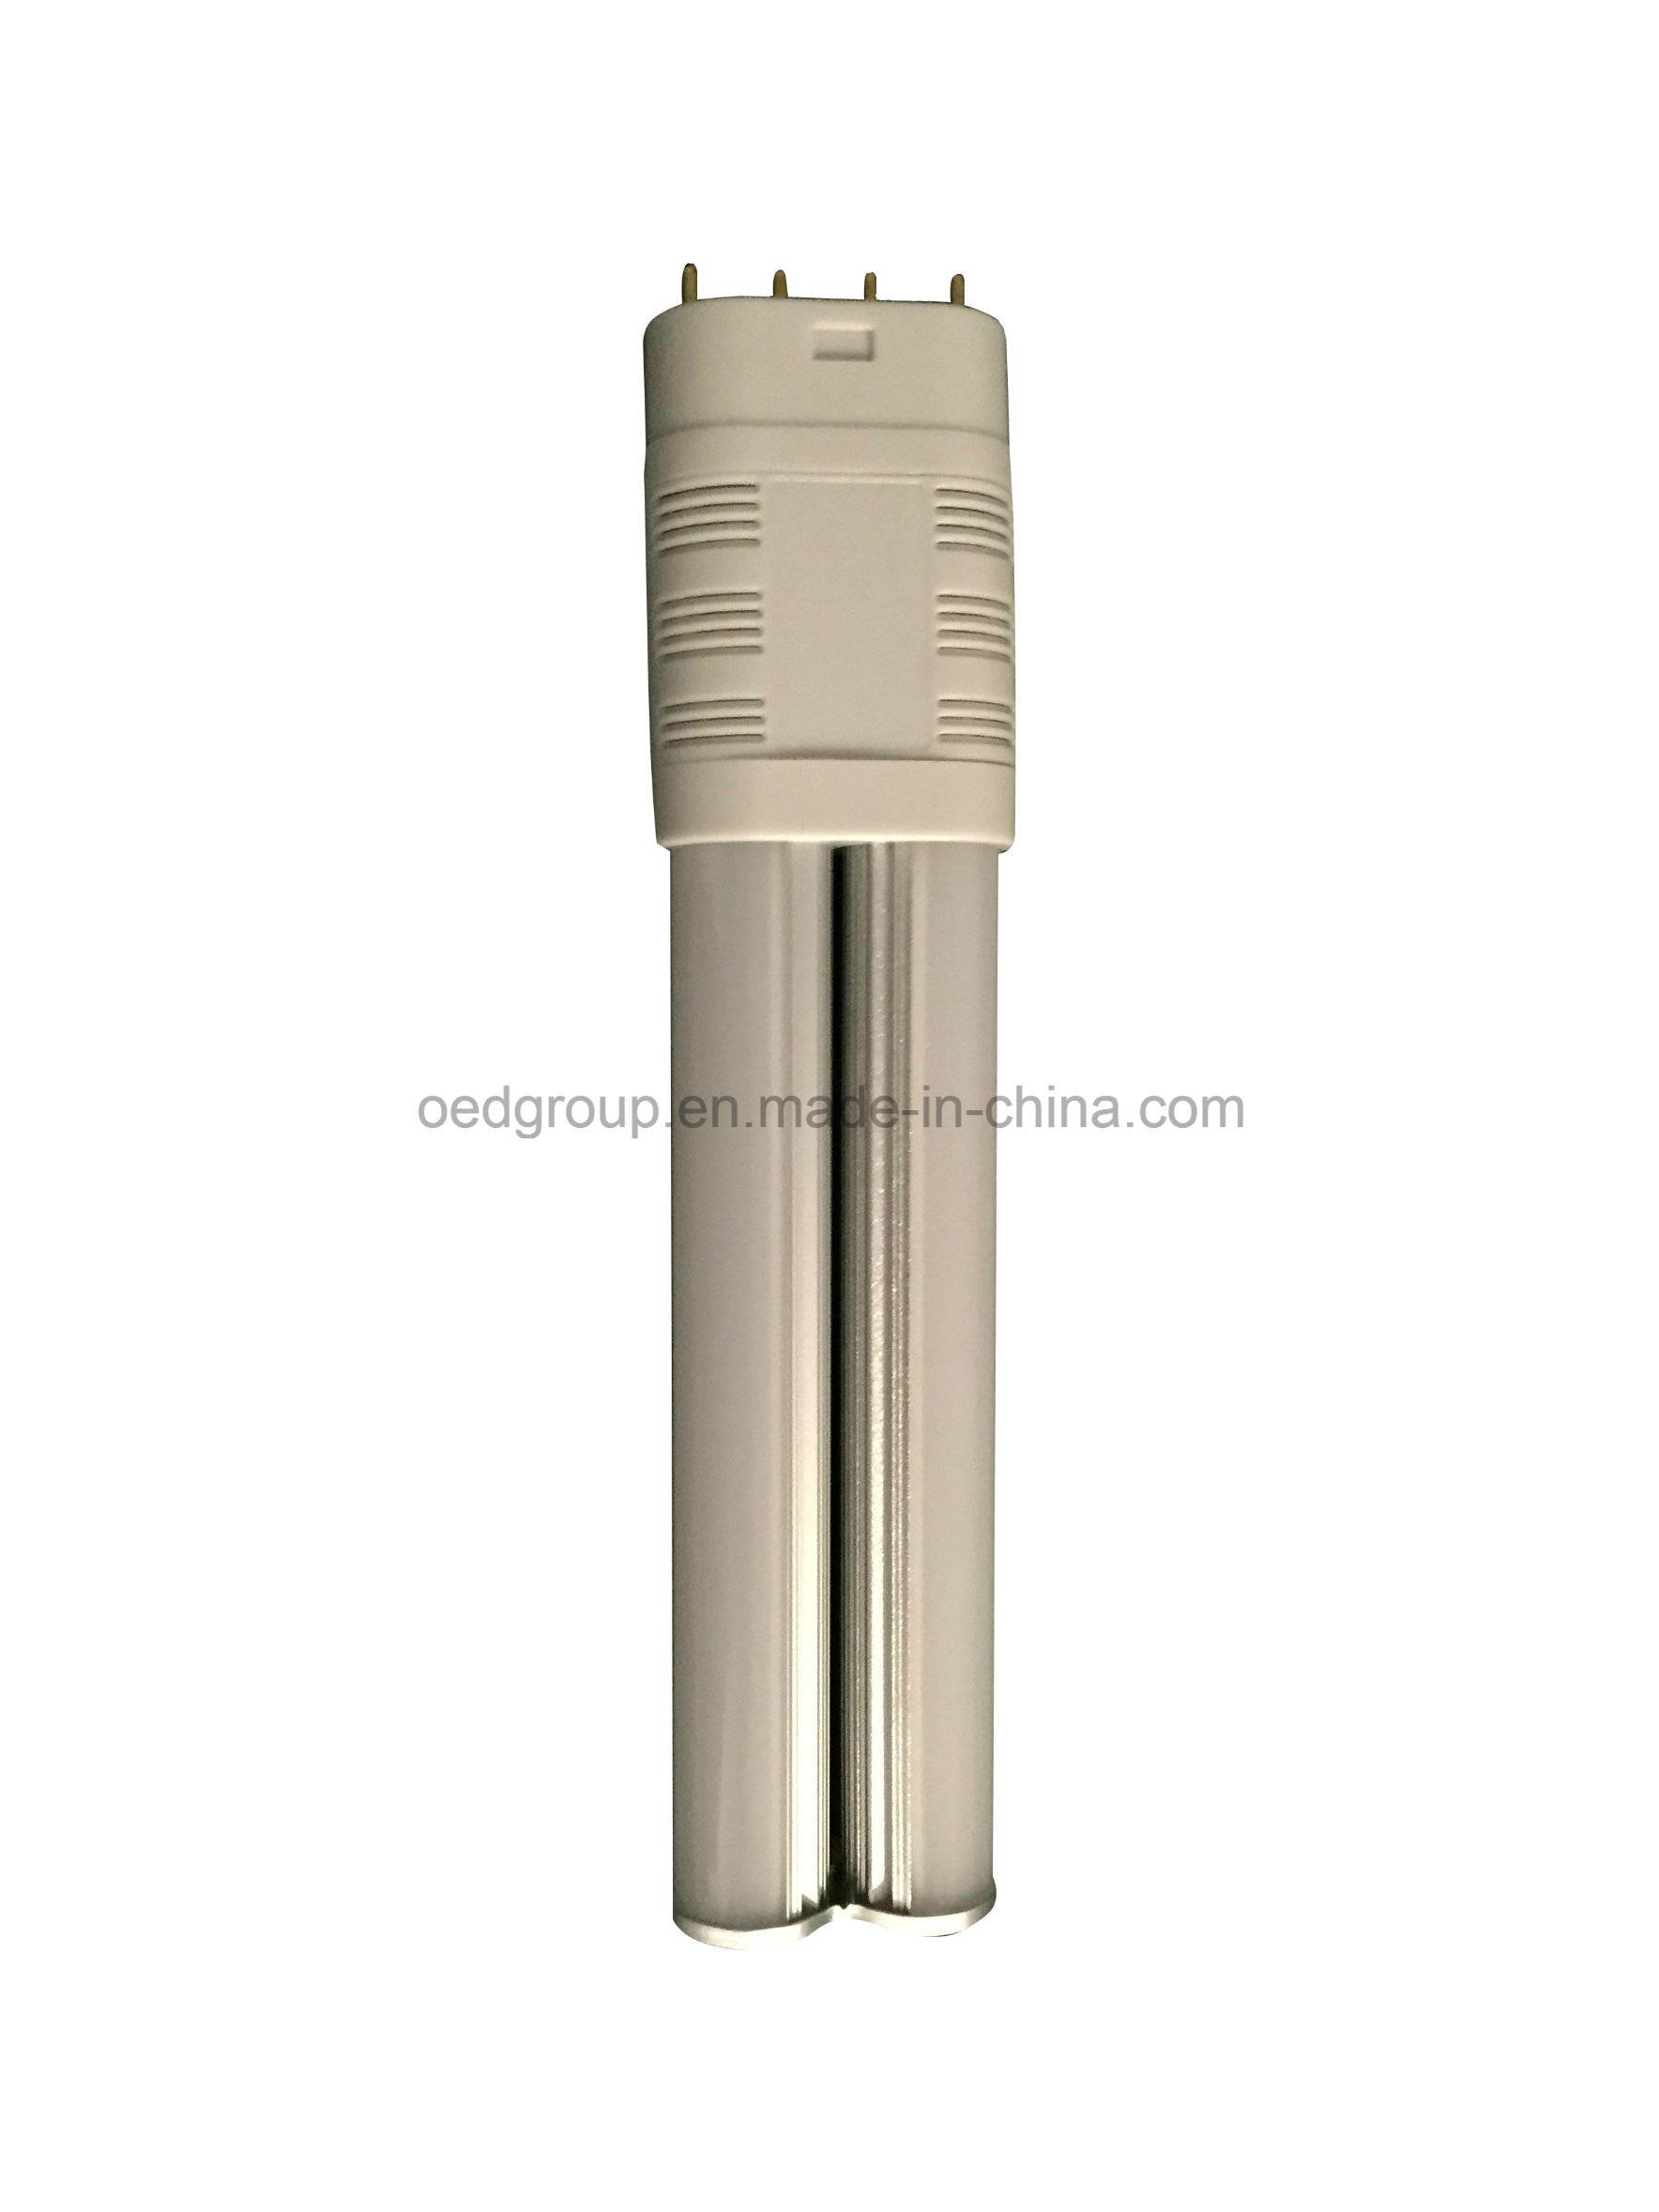 2g11 360 Degrees Double Tubes Plug Light 10W 13W 15W 4 Pin Pl Lamp 2835 SMD Replacement 2g11 LED Tube